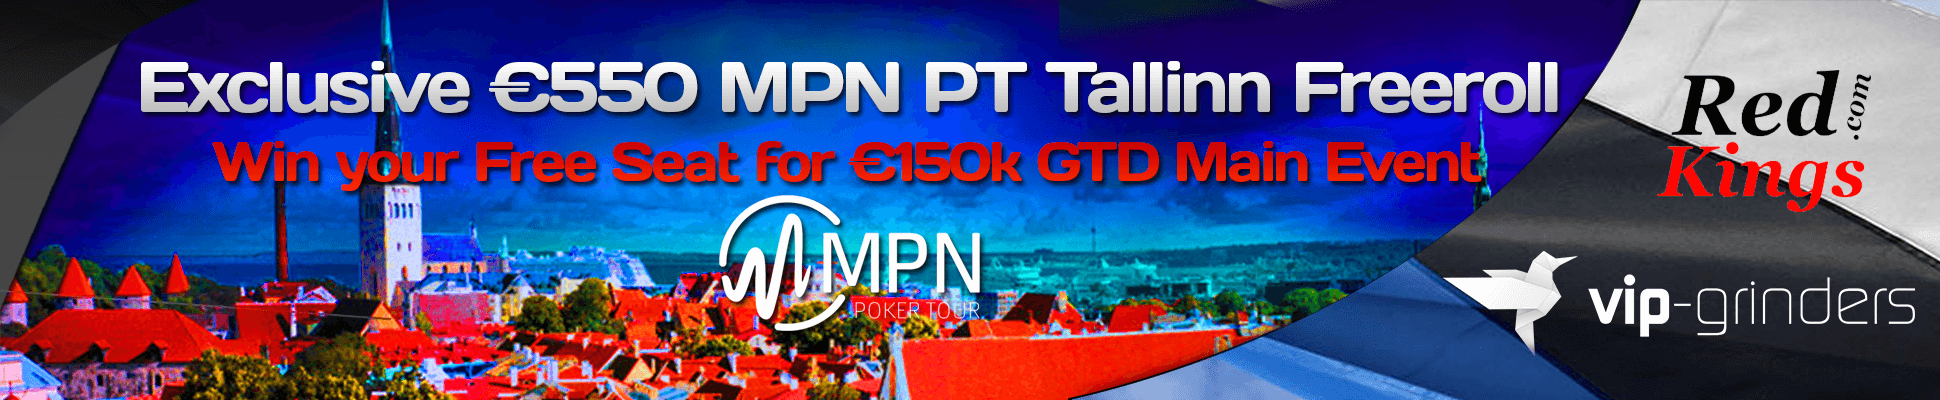 tallin redkings freeroll